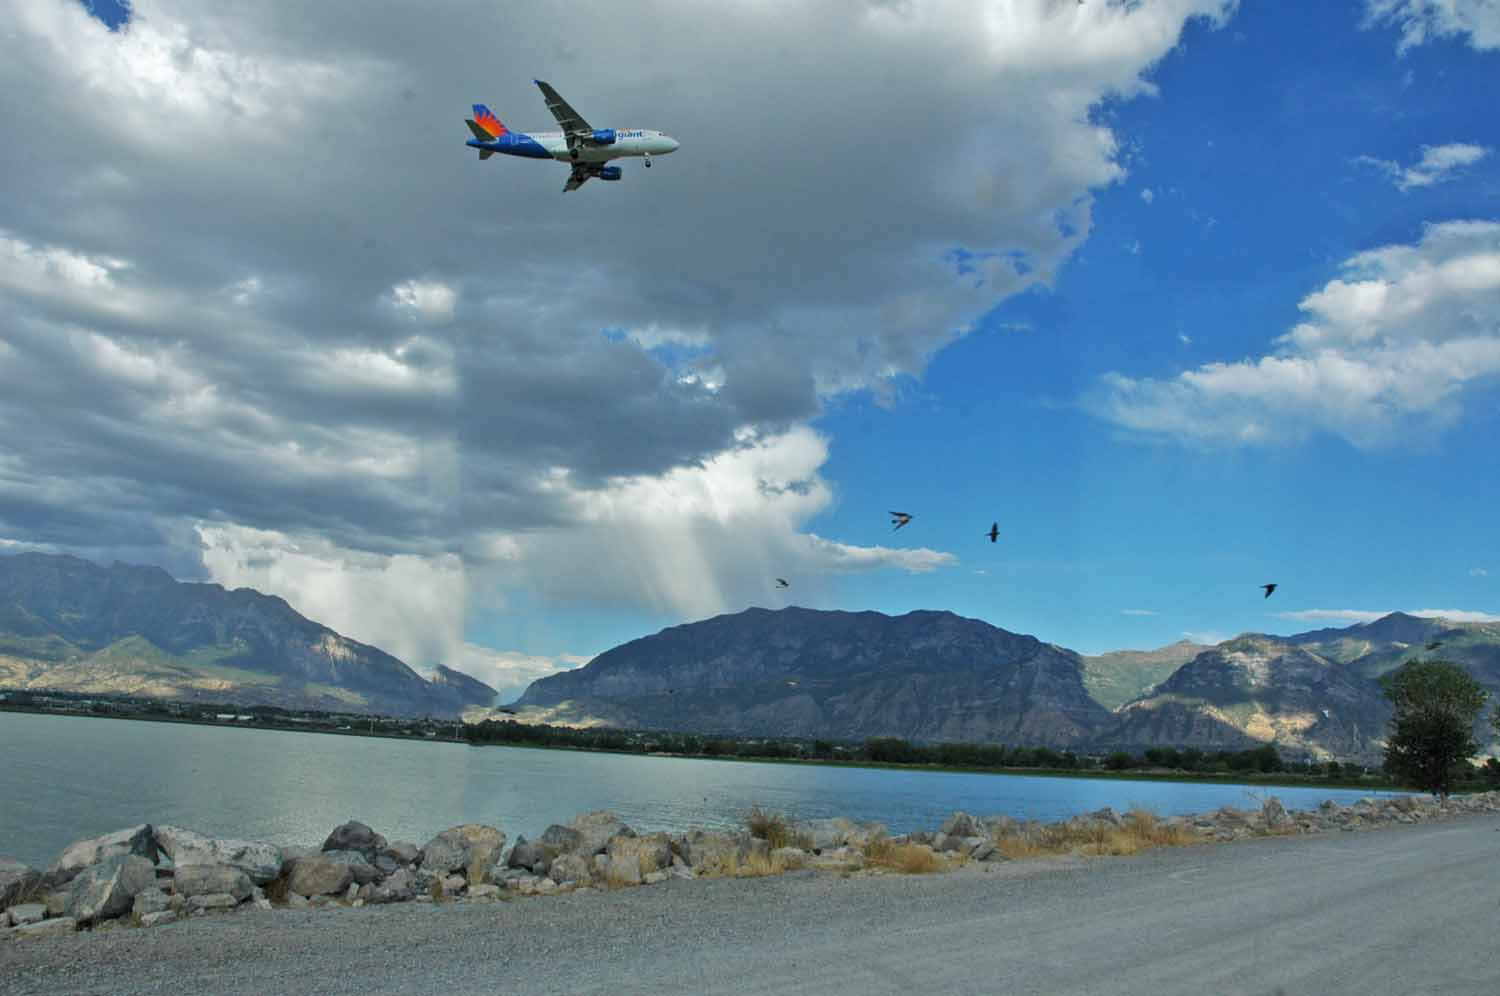 RV park on Utah Lake at Provo - Action in the air...